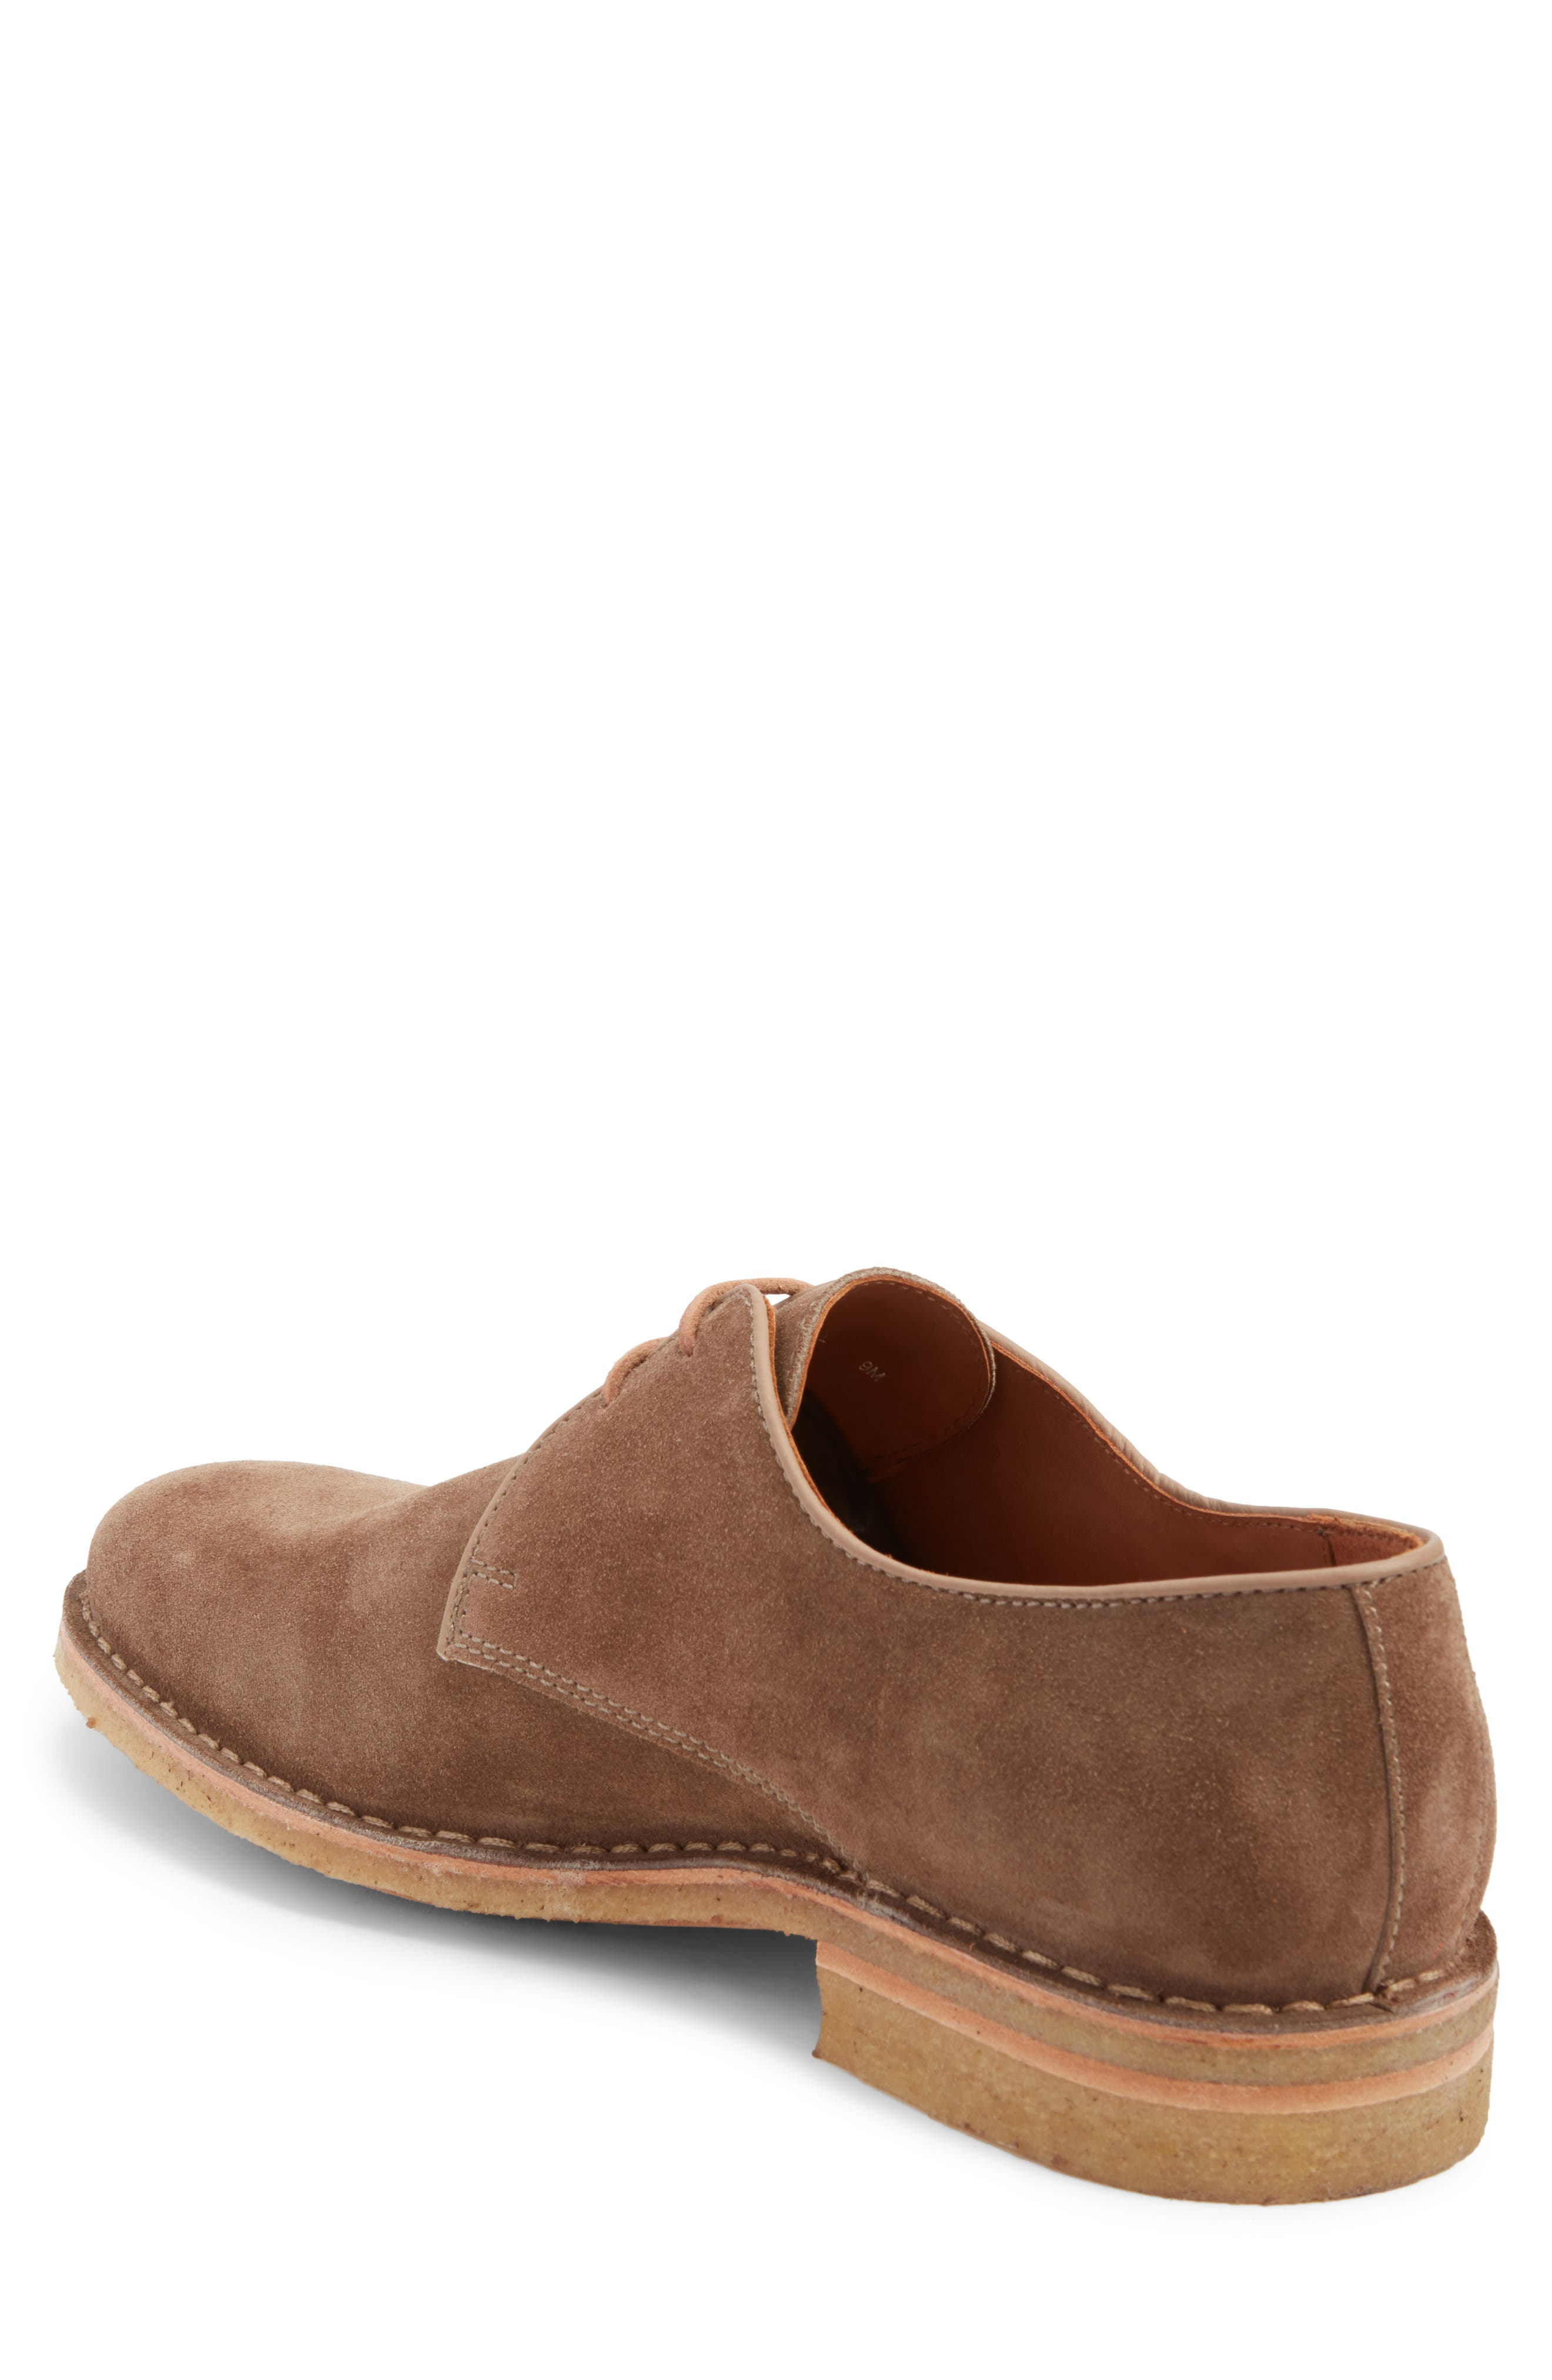 Alternate Image 2  - Aquatalia Otis Buck Shoe (Men)